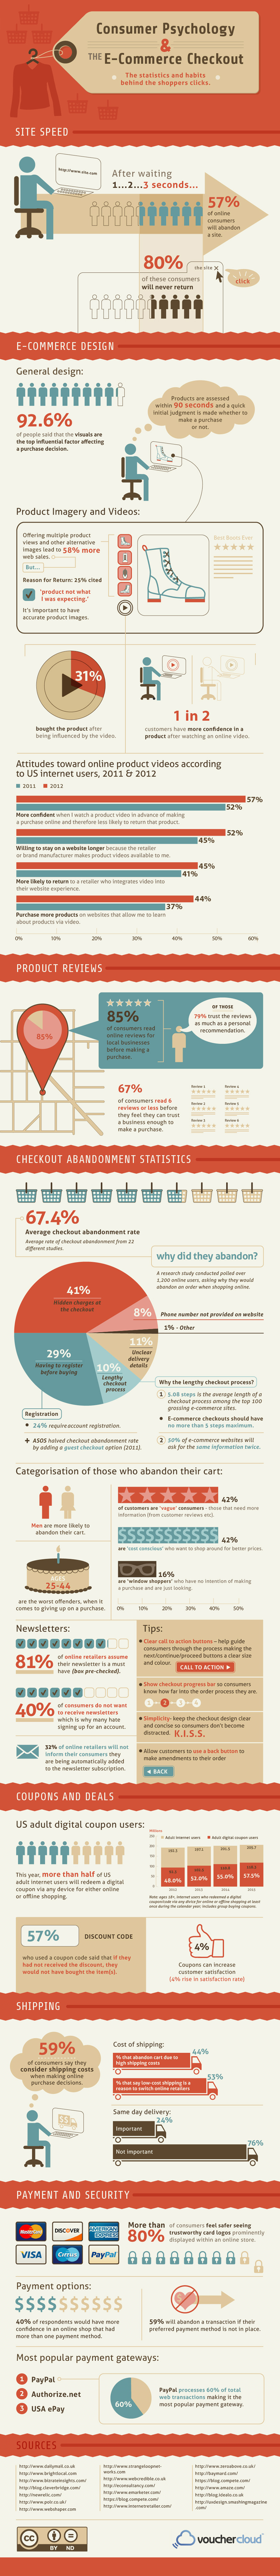 Consumer Psychology and E-Commerce Checkout [Infographic]